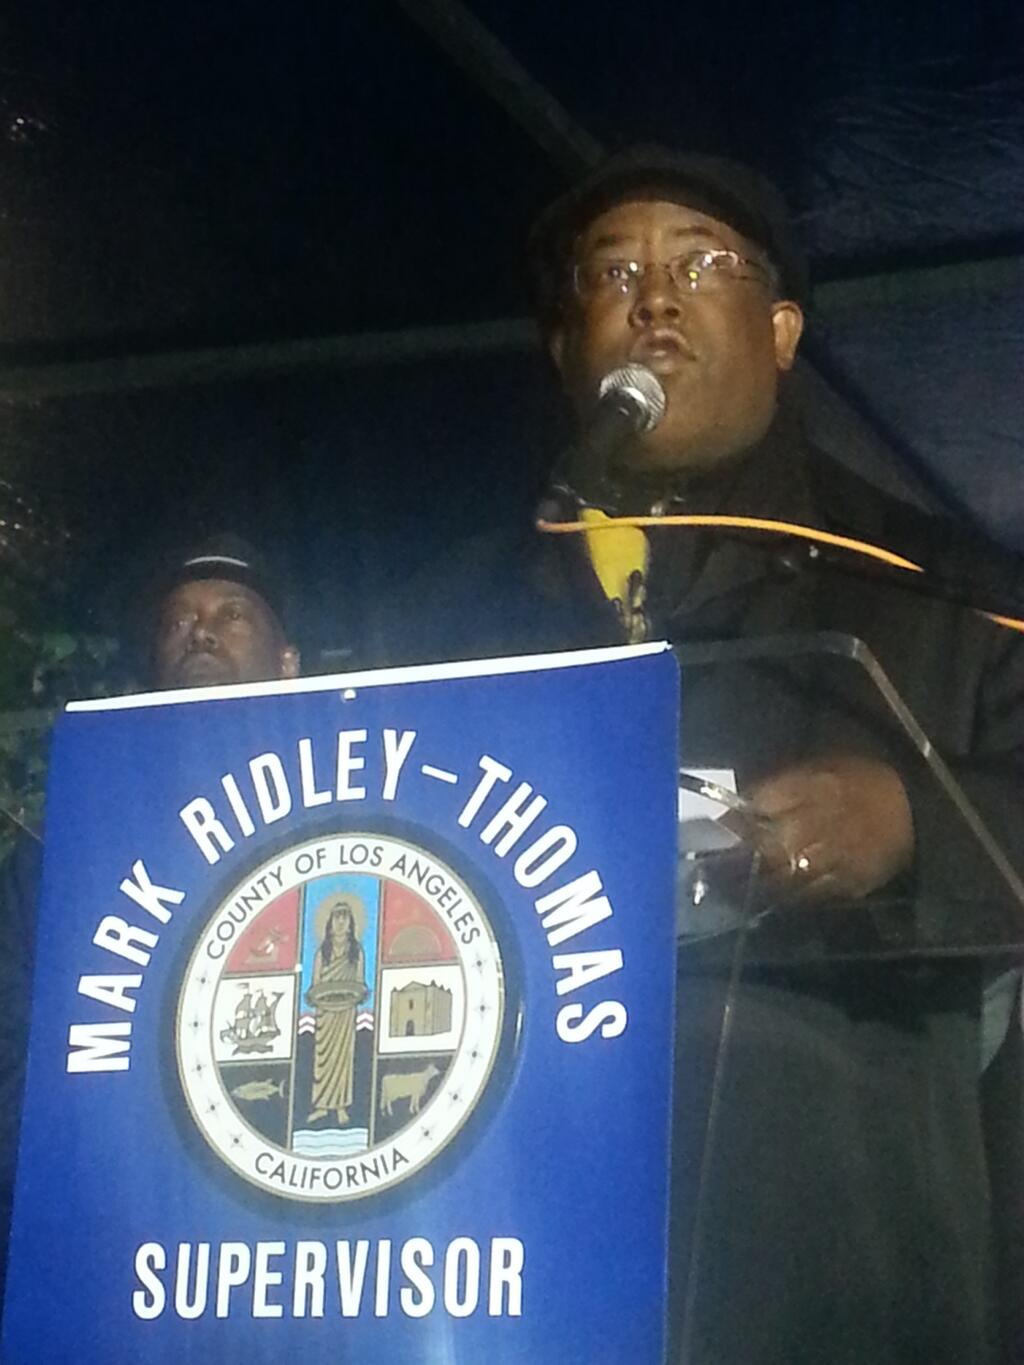 L.A. County Supervisor Mark Ridley-Thomas addresses the crowd against trafficking of children. (photo: Najee Ali/November 21, 2013)